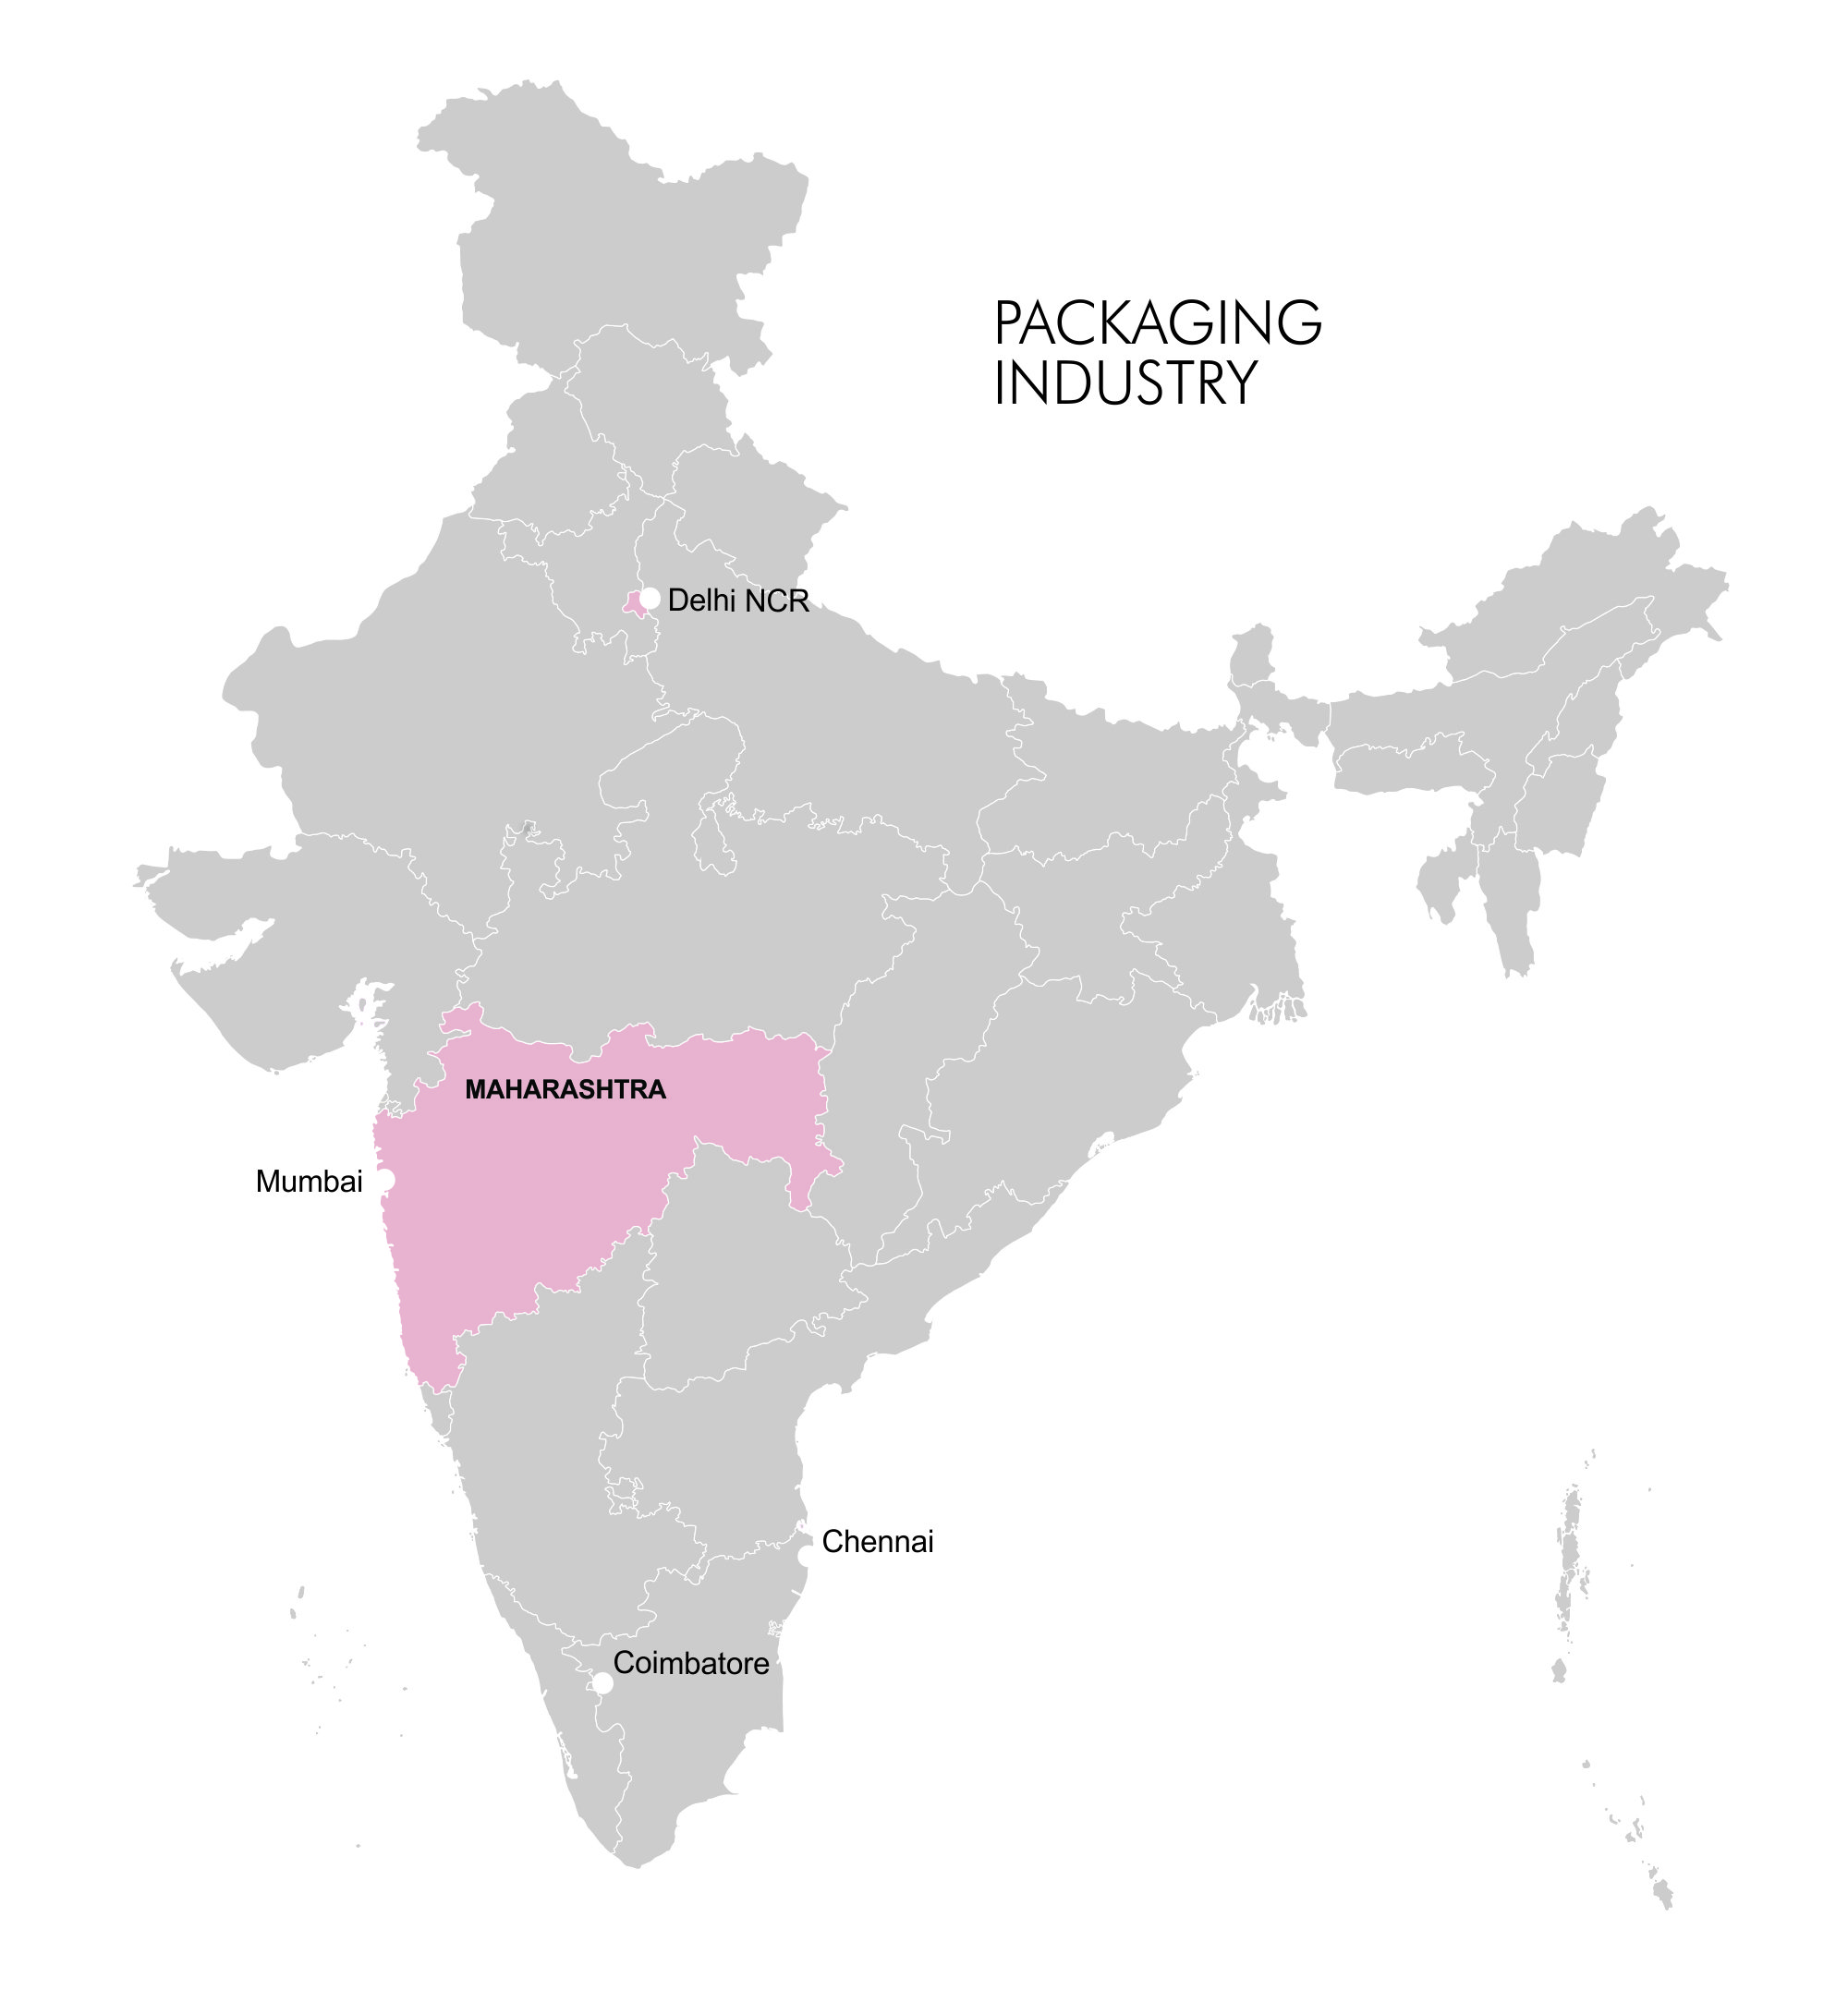 Map- Clusters - Packaging Industry